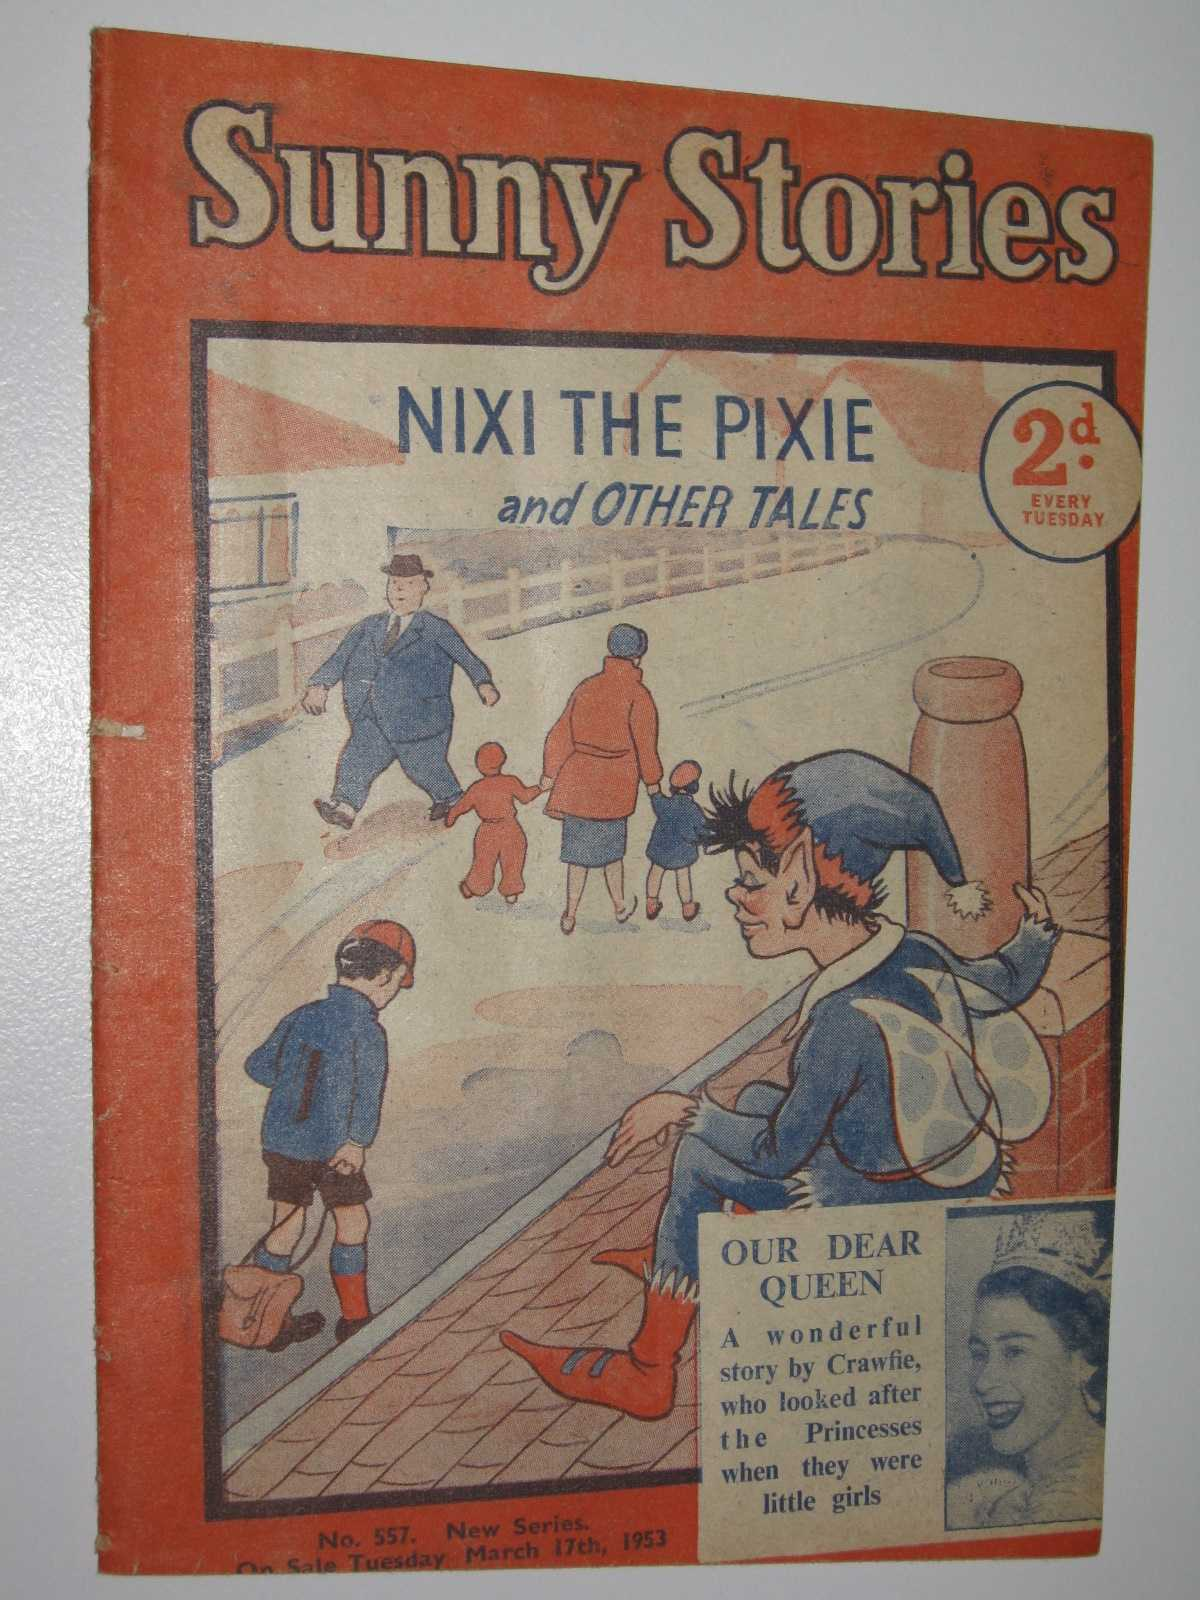 Sunny Stories No. 557 New Series : Nixi the Pixie & Other Tales, Blyton, Enid